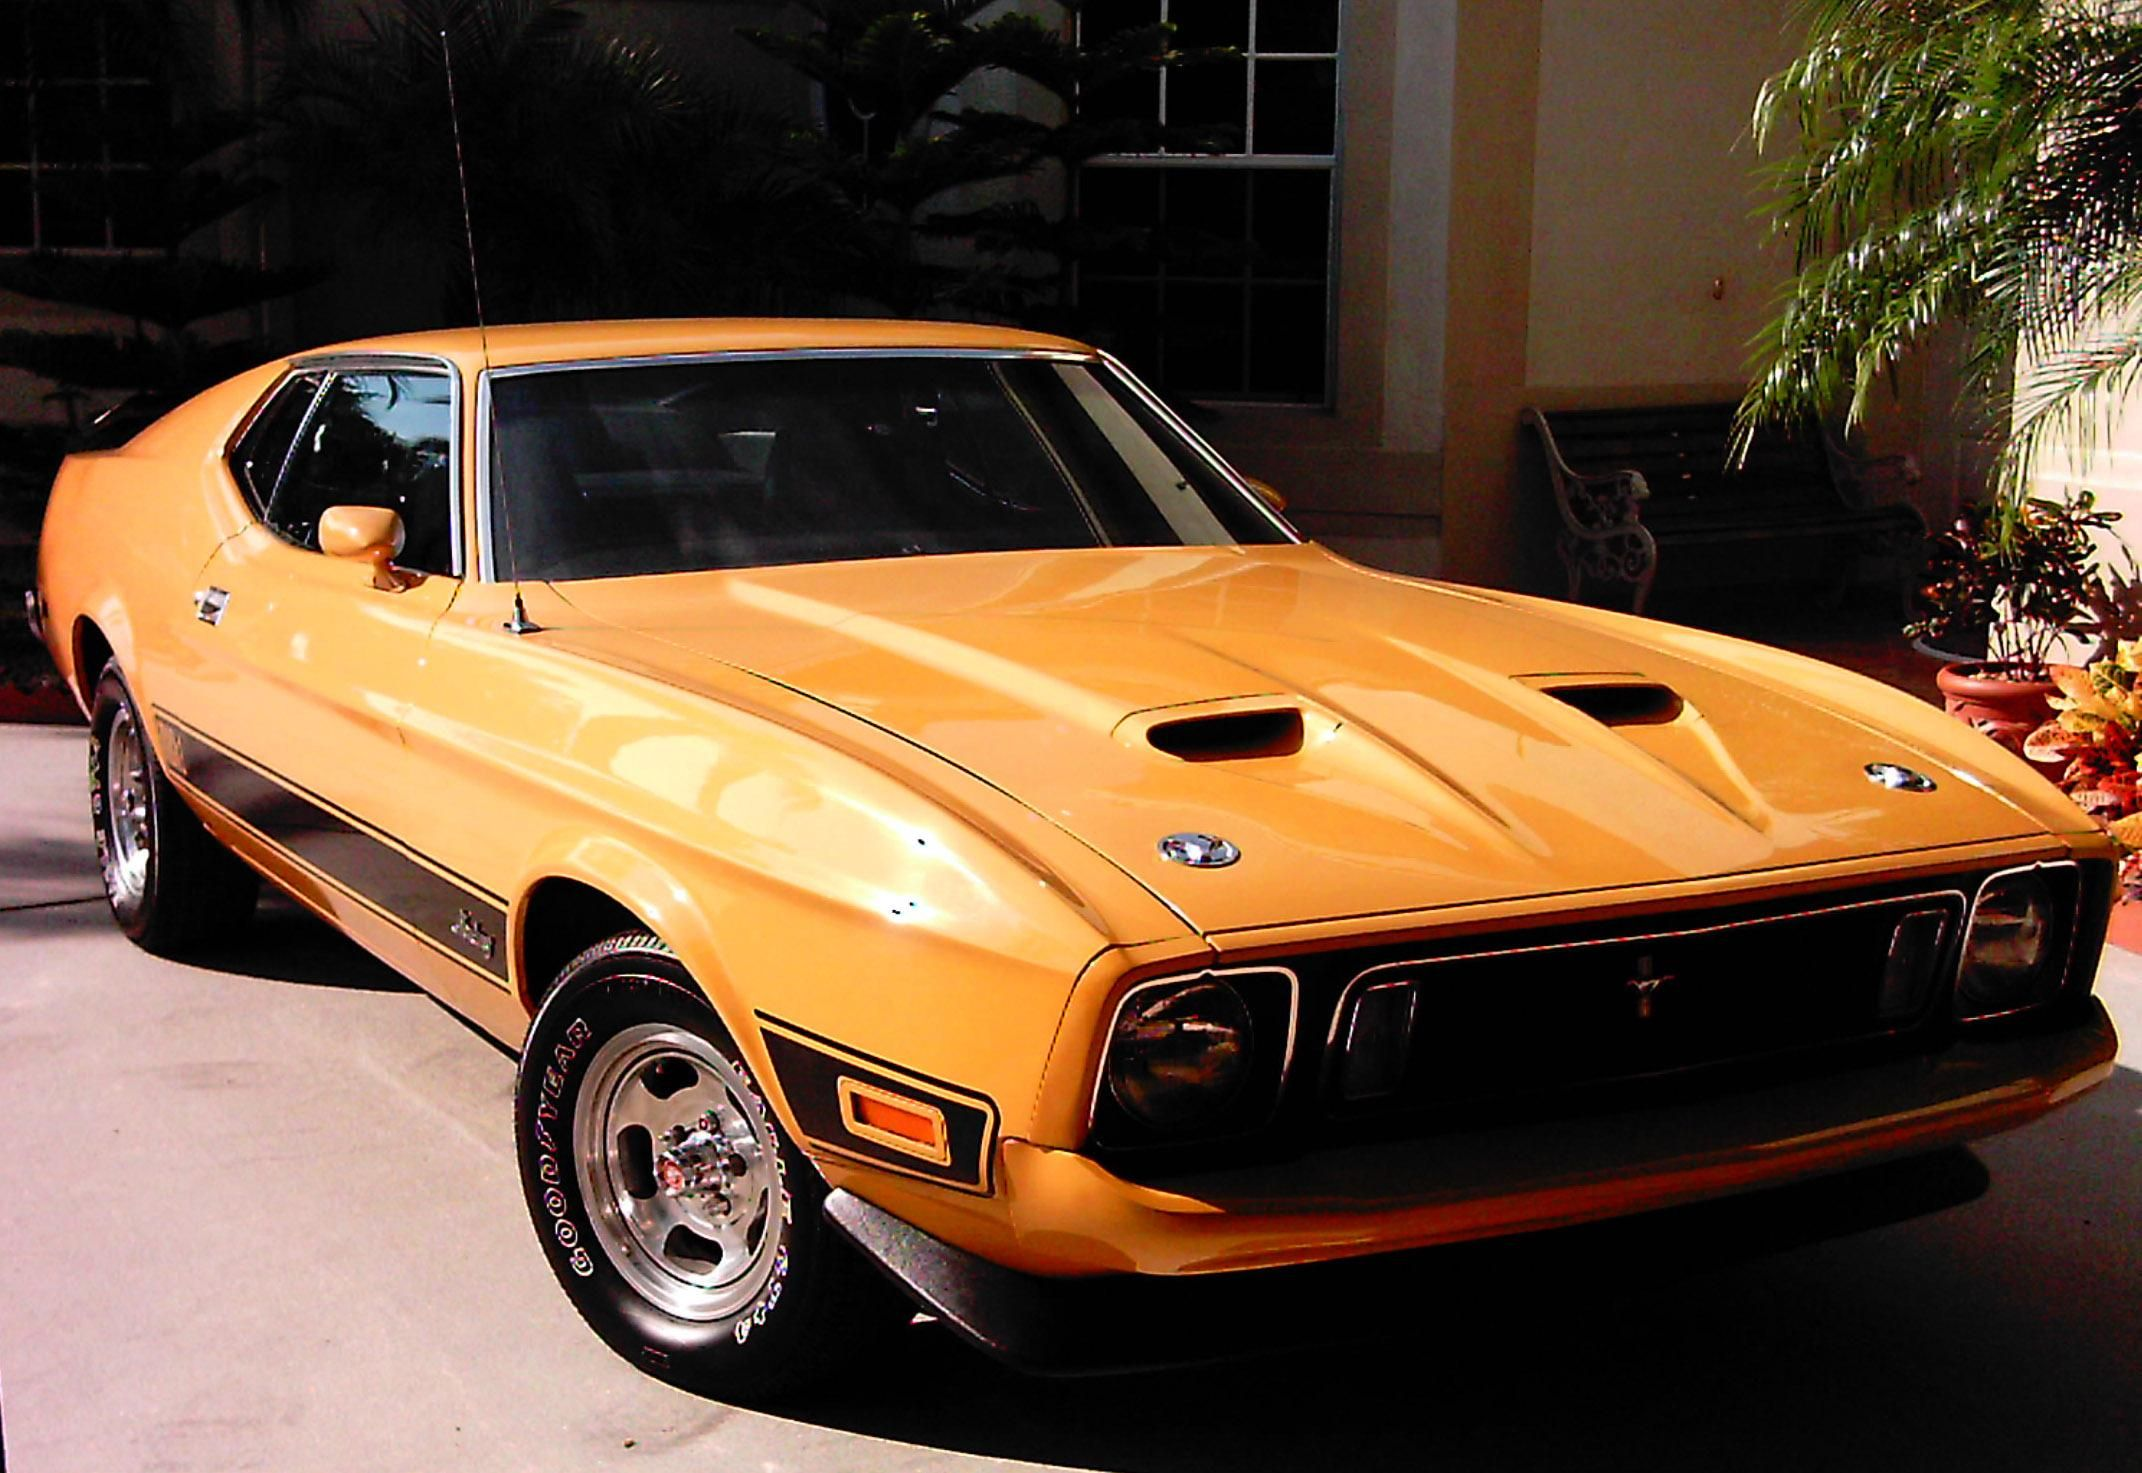 Awesome muscle cars hd awesome muscle car wallpaper - Muscle cars wallpaper hd pack ...